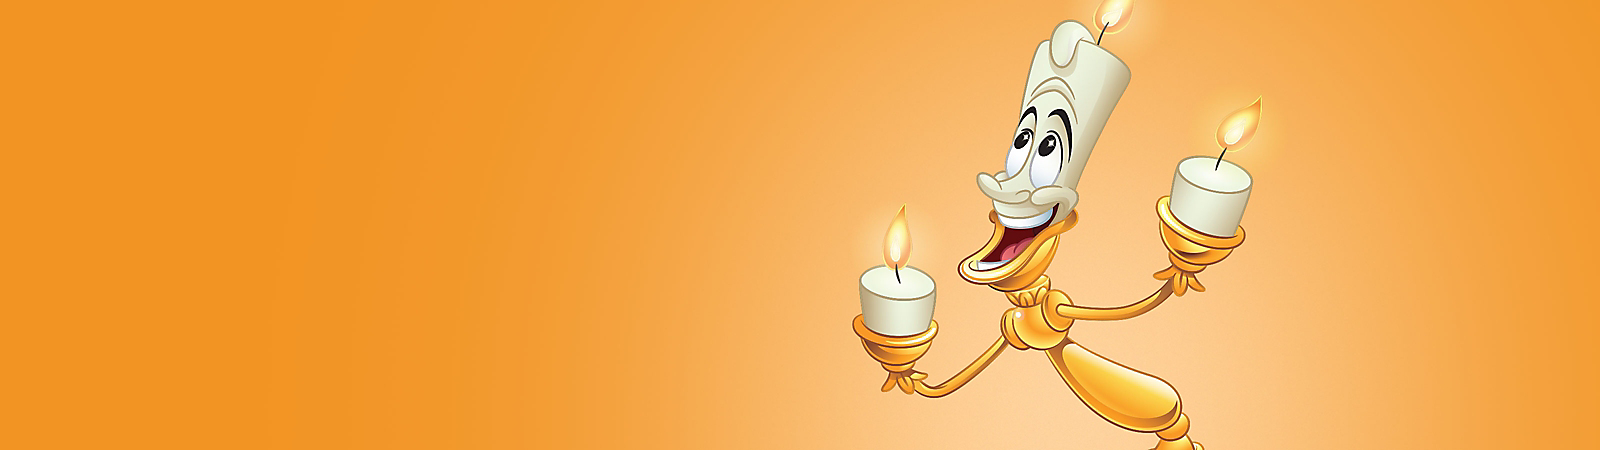 Background image of Lumiere